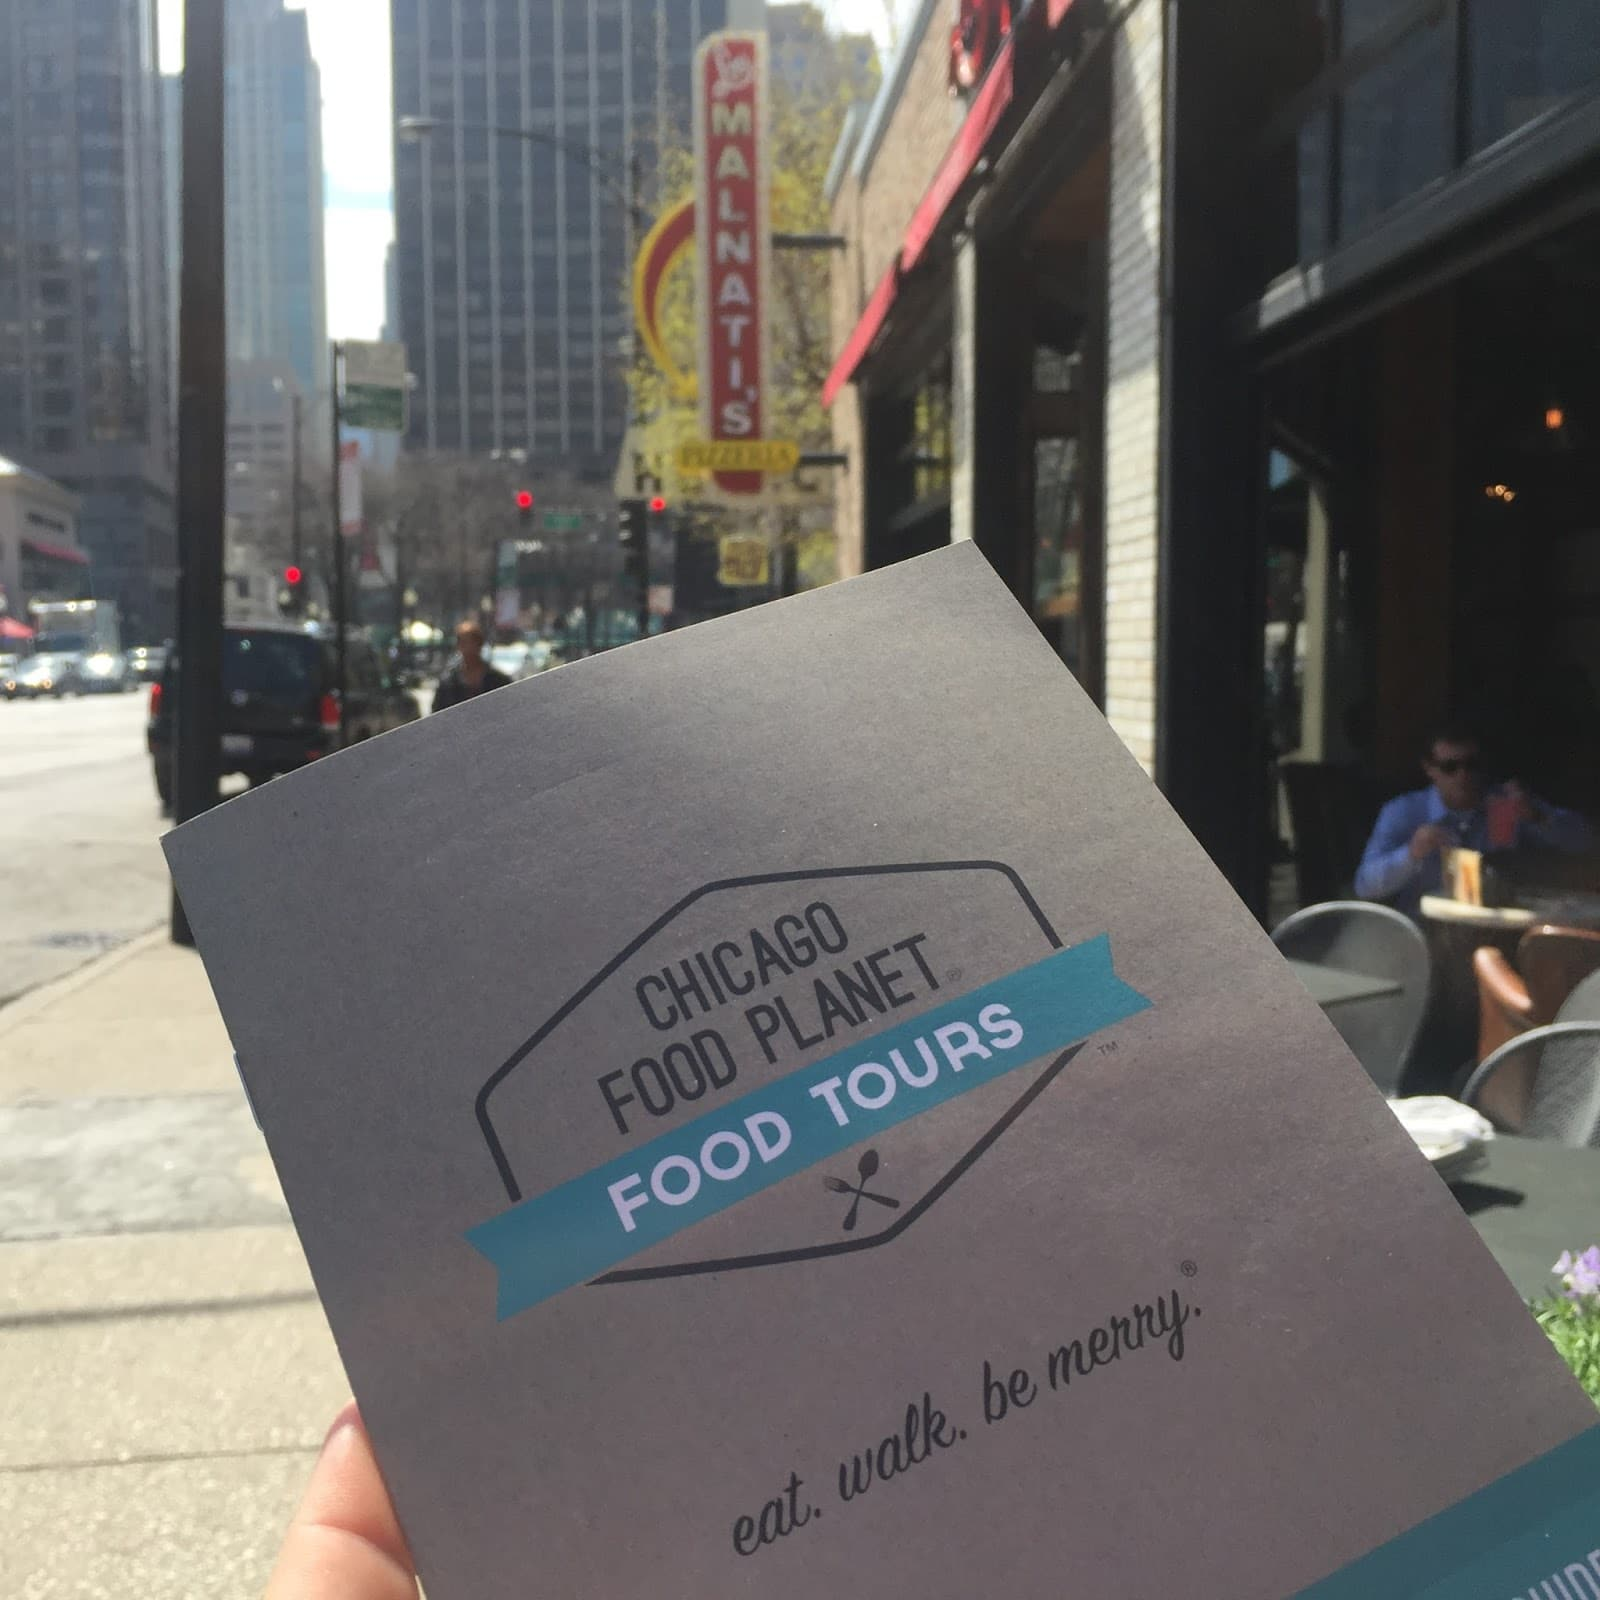 Chicago Food Tour featuring a review of Chicago Food Planet by Kim Vij